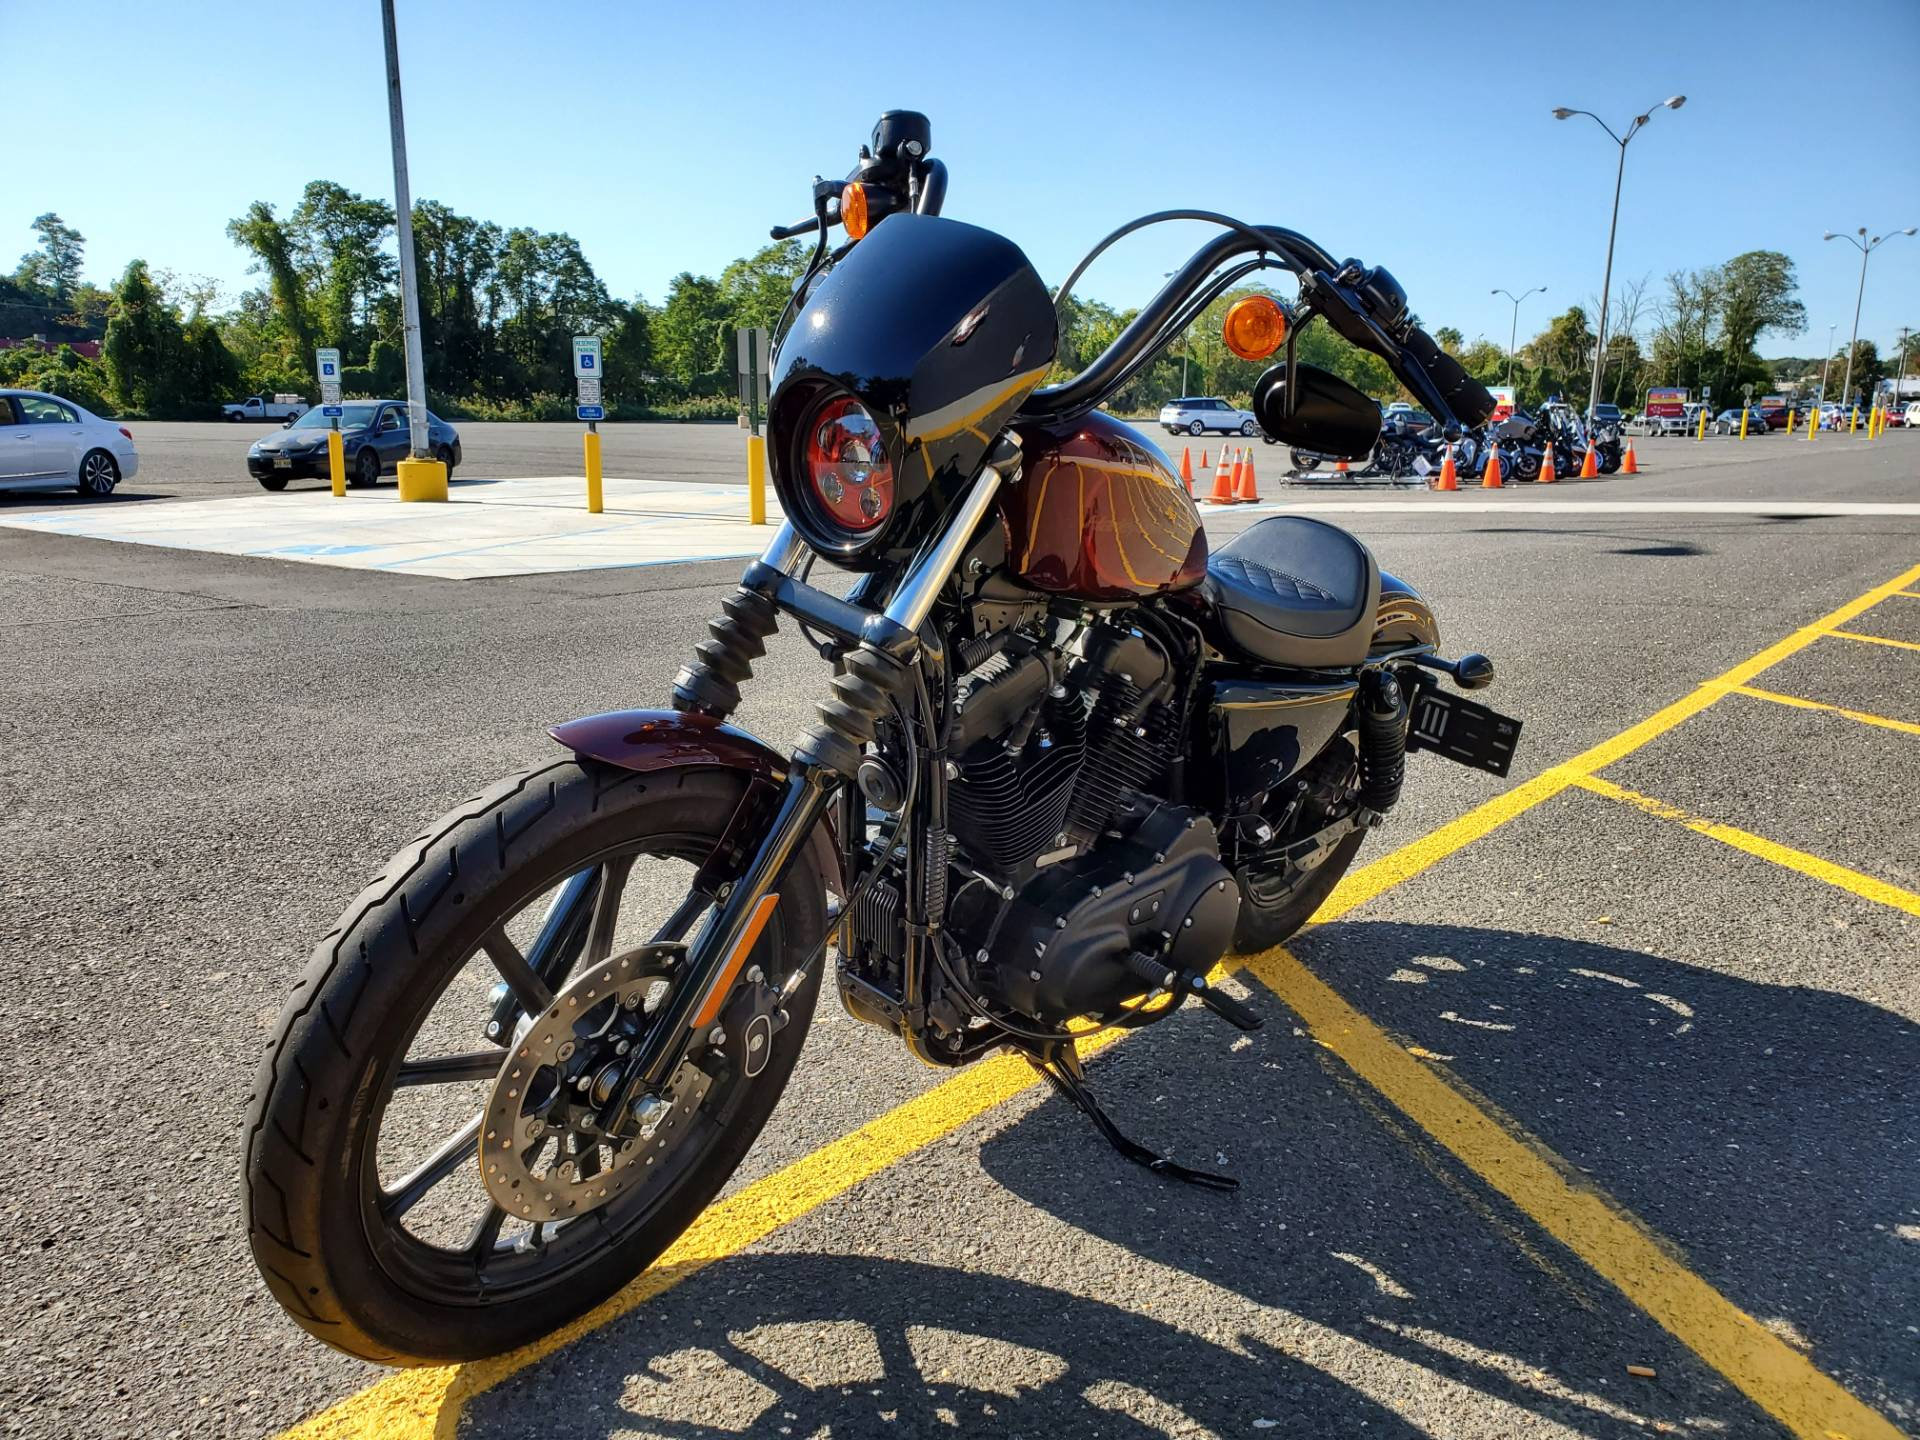 2019 Harley-Davidson Iron 1200 in West Long Branch, New Jersey - Photo 4